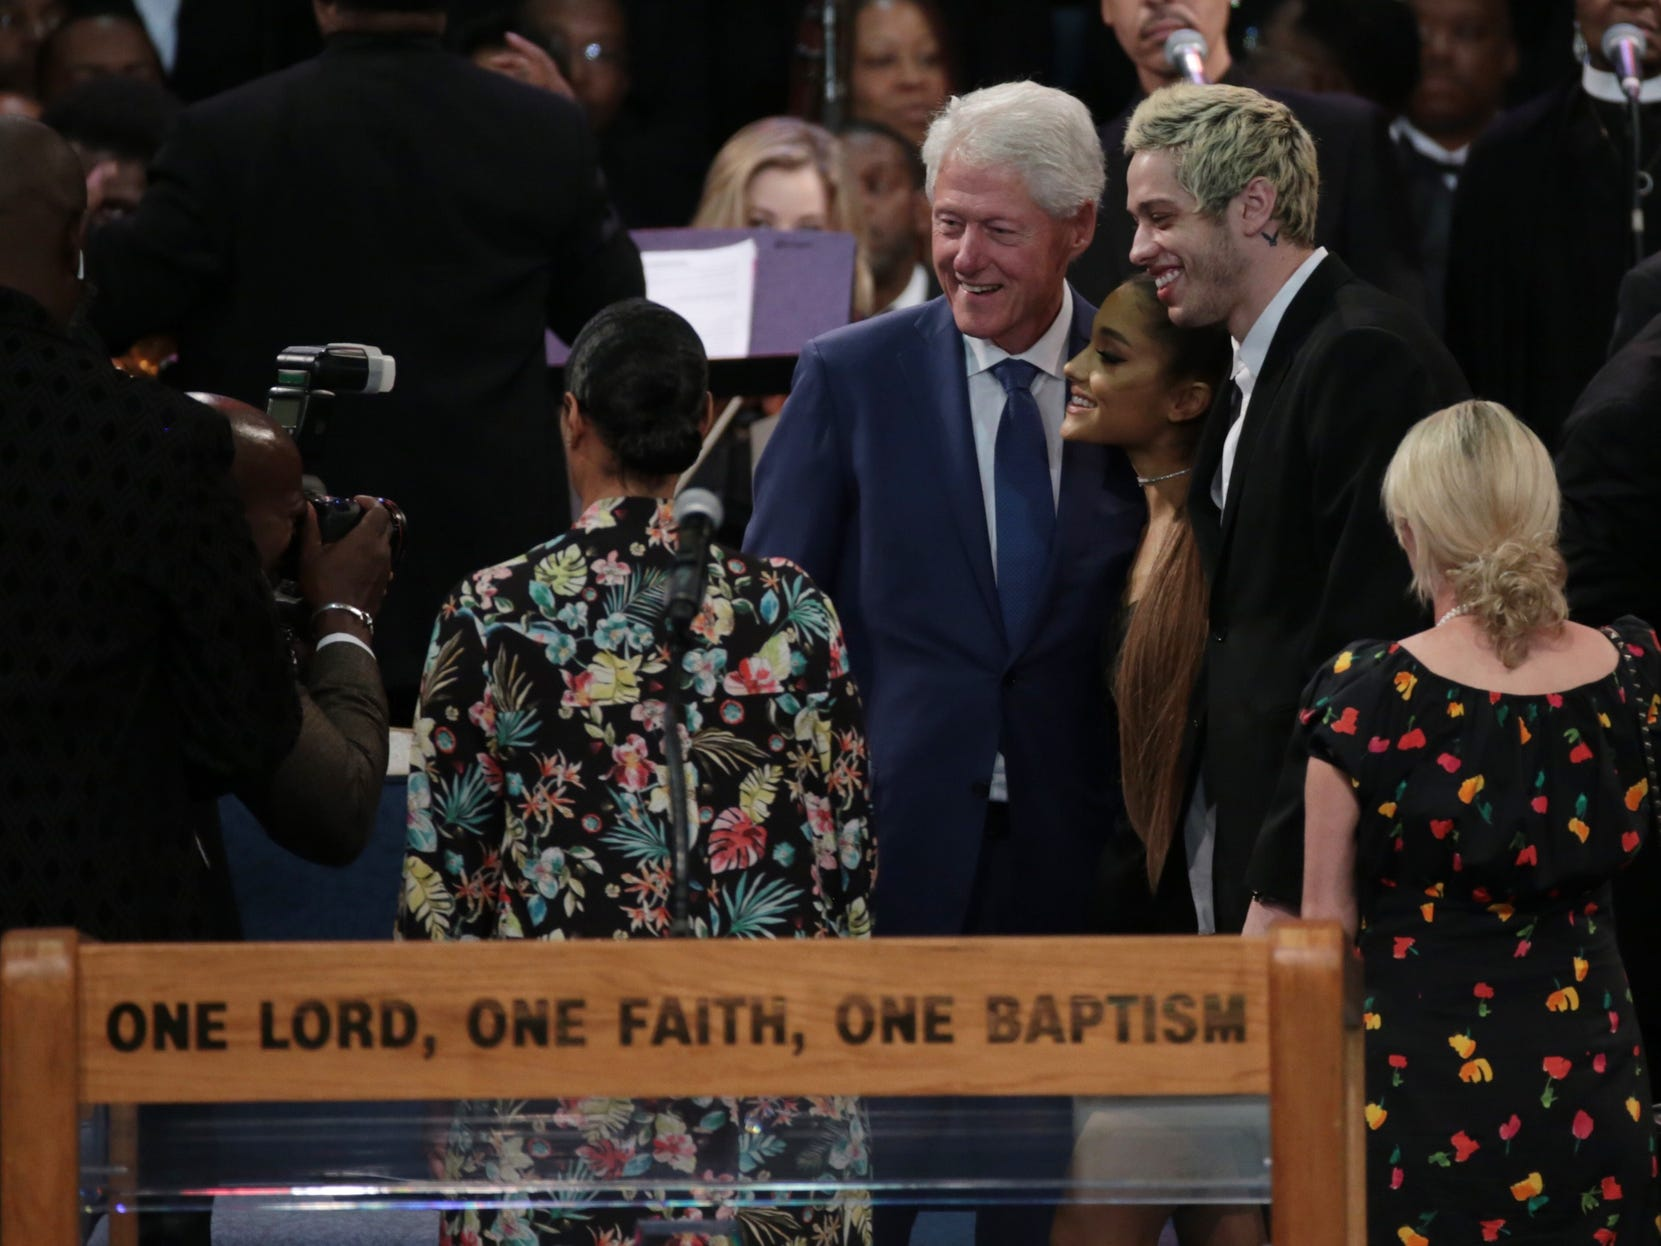 Singer Ariana Grande and Pete Davidson pose for a photo with former president Bill Clinton during the funeral for the late Aretha Franklin at Greater Grace Temple in Detroit on Friday, August 31, 2018.